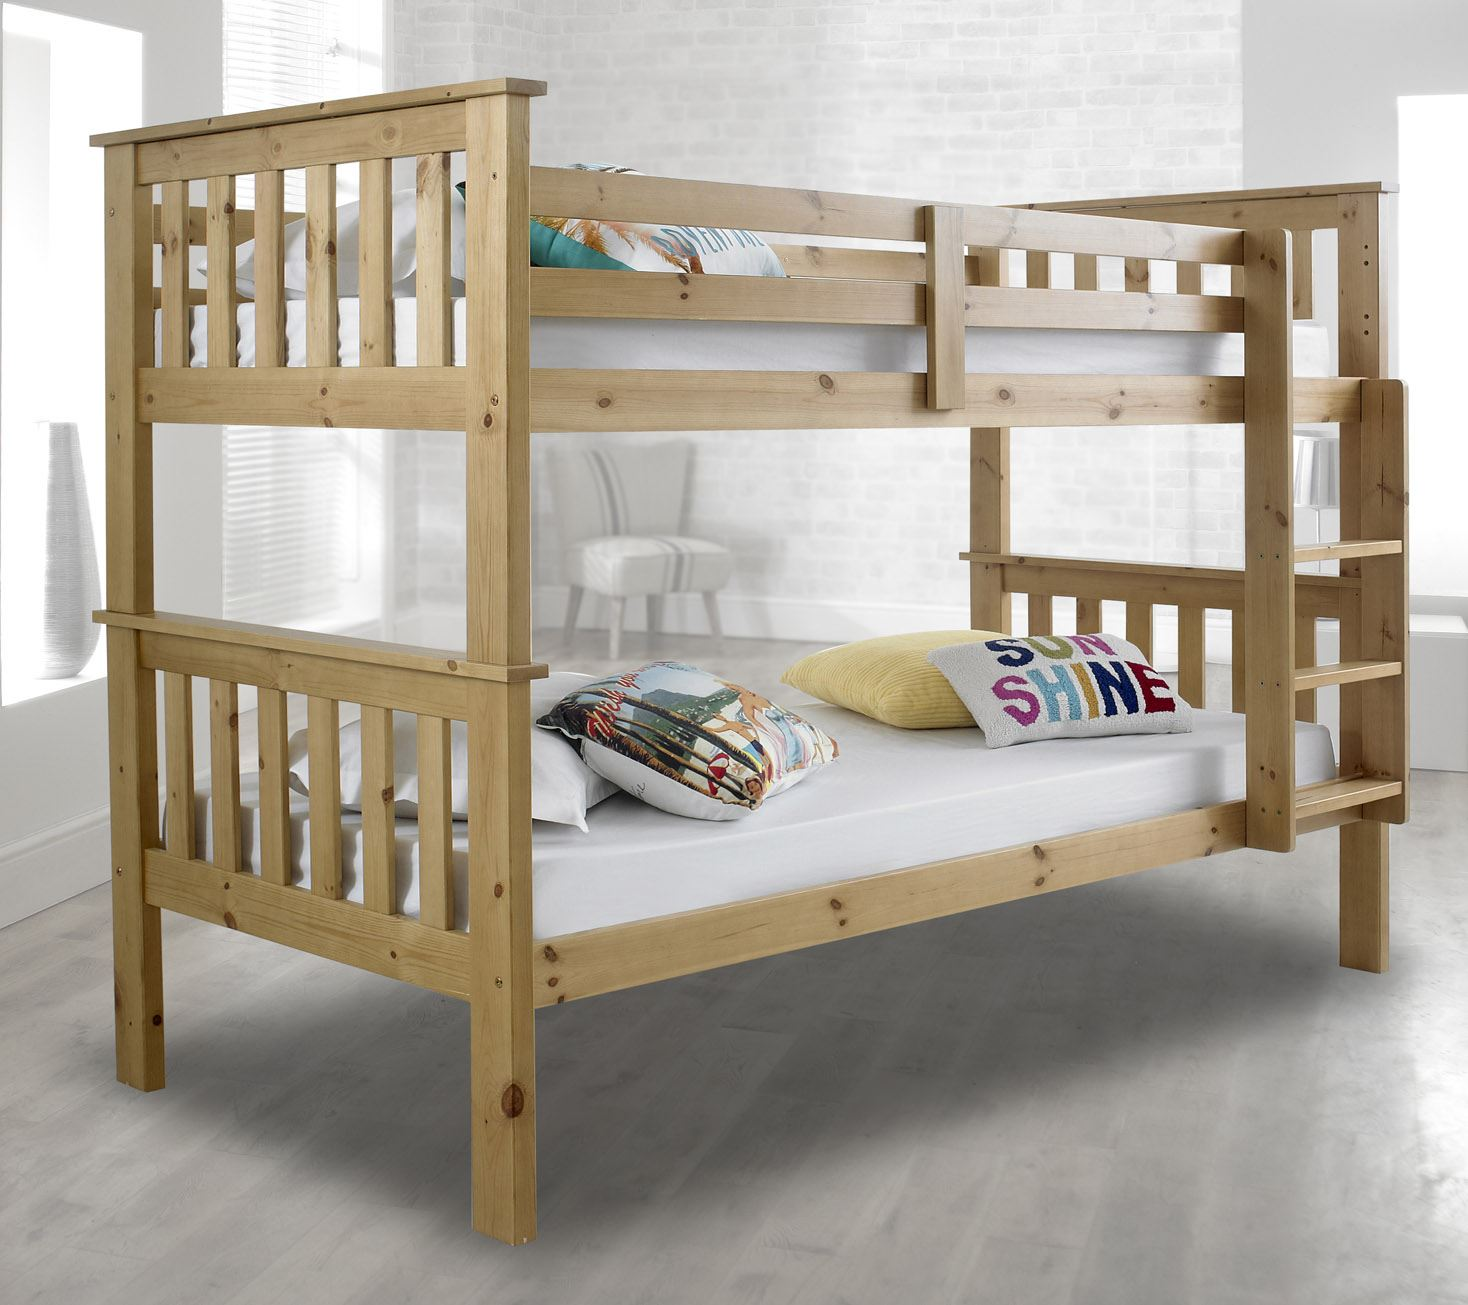 Bunk Bed Mattress Happy Beds Atlantis Wooden Bunk Bed 3ft Single Solid Pine